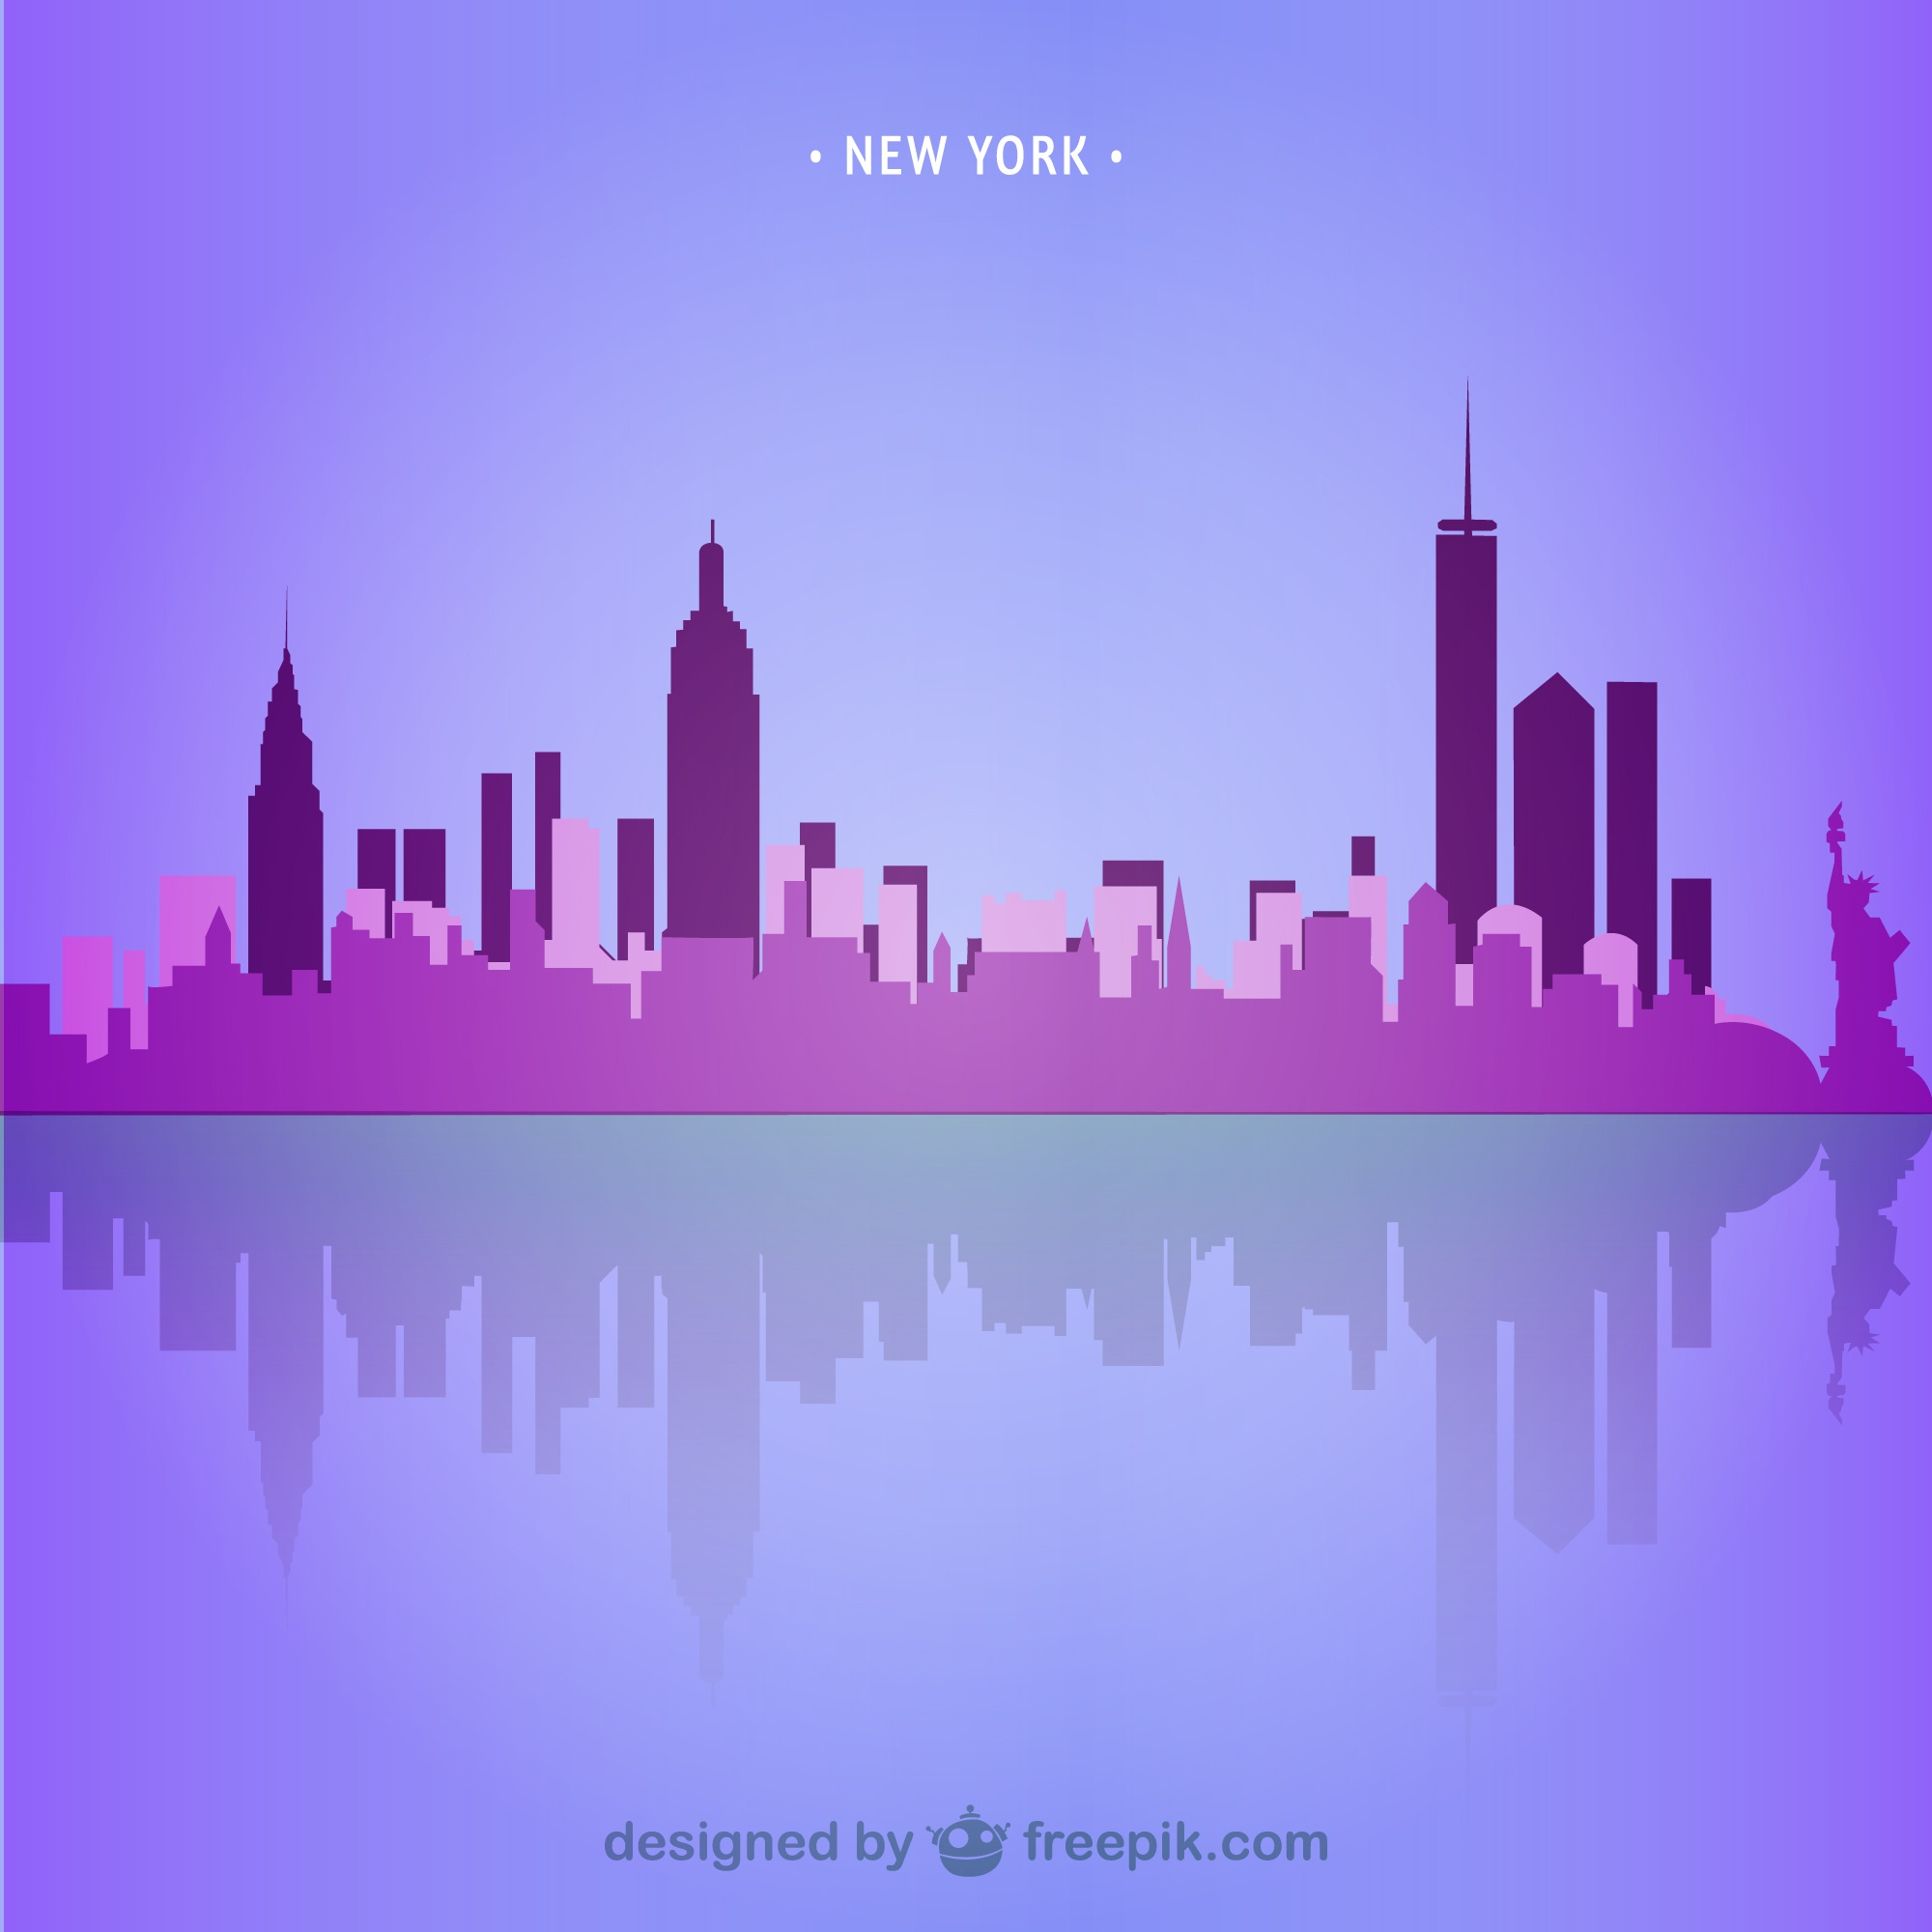 New York skyline illustration